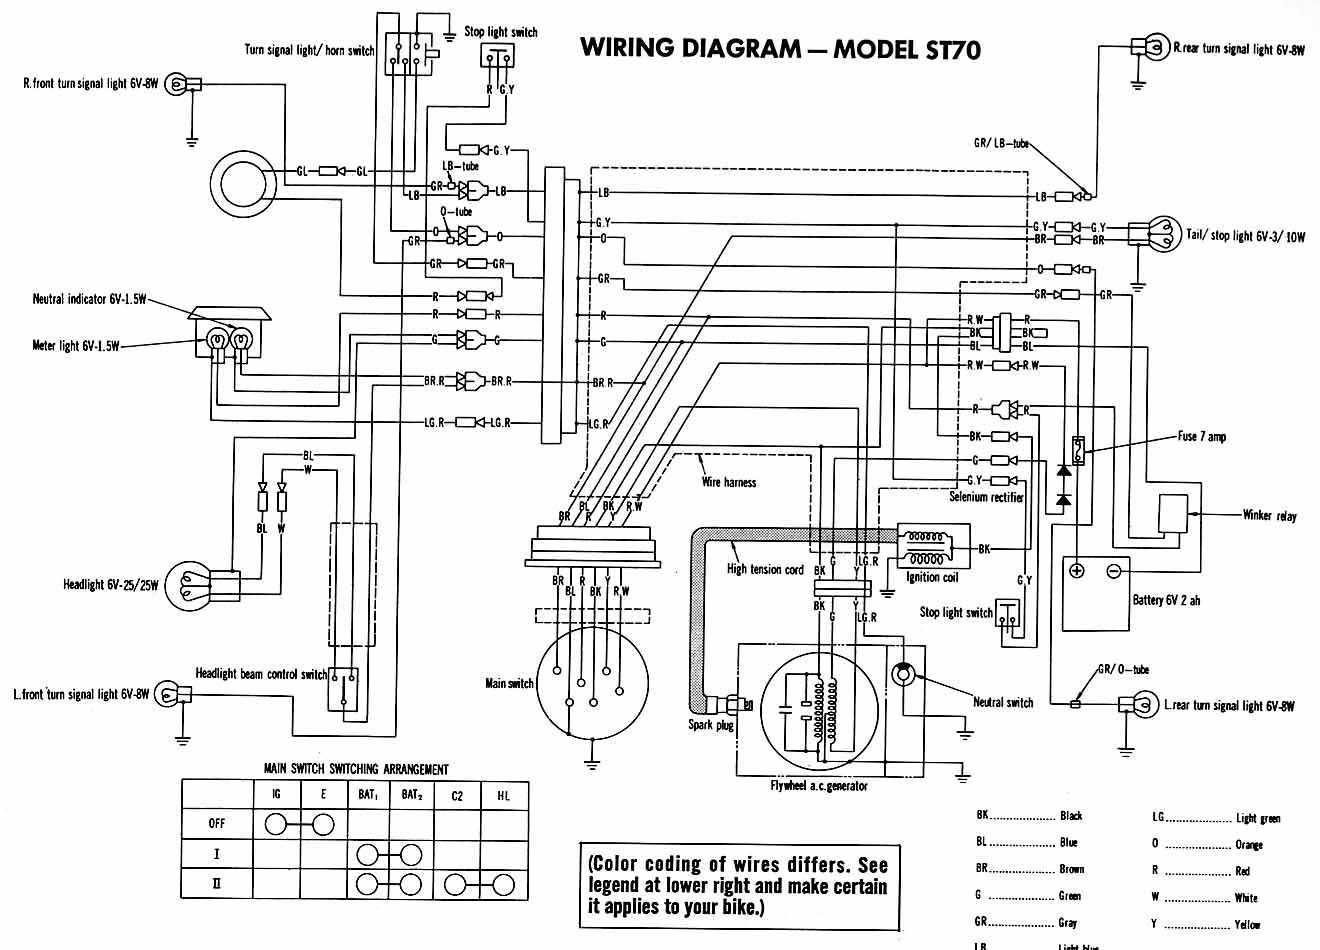 Honda Cb1000c Wiring Diagram Best Electrical Schematic Location Of Fuse Box 1982 Goldwing Gx390 Cbx 1100